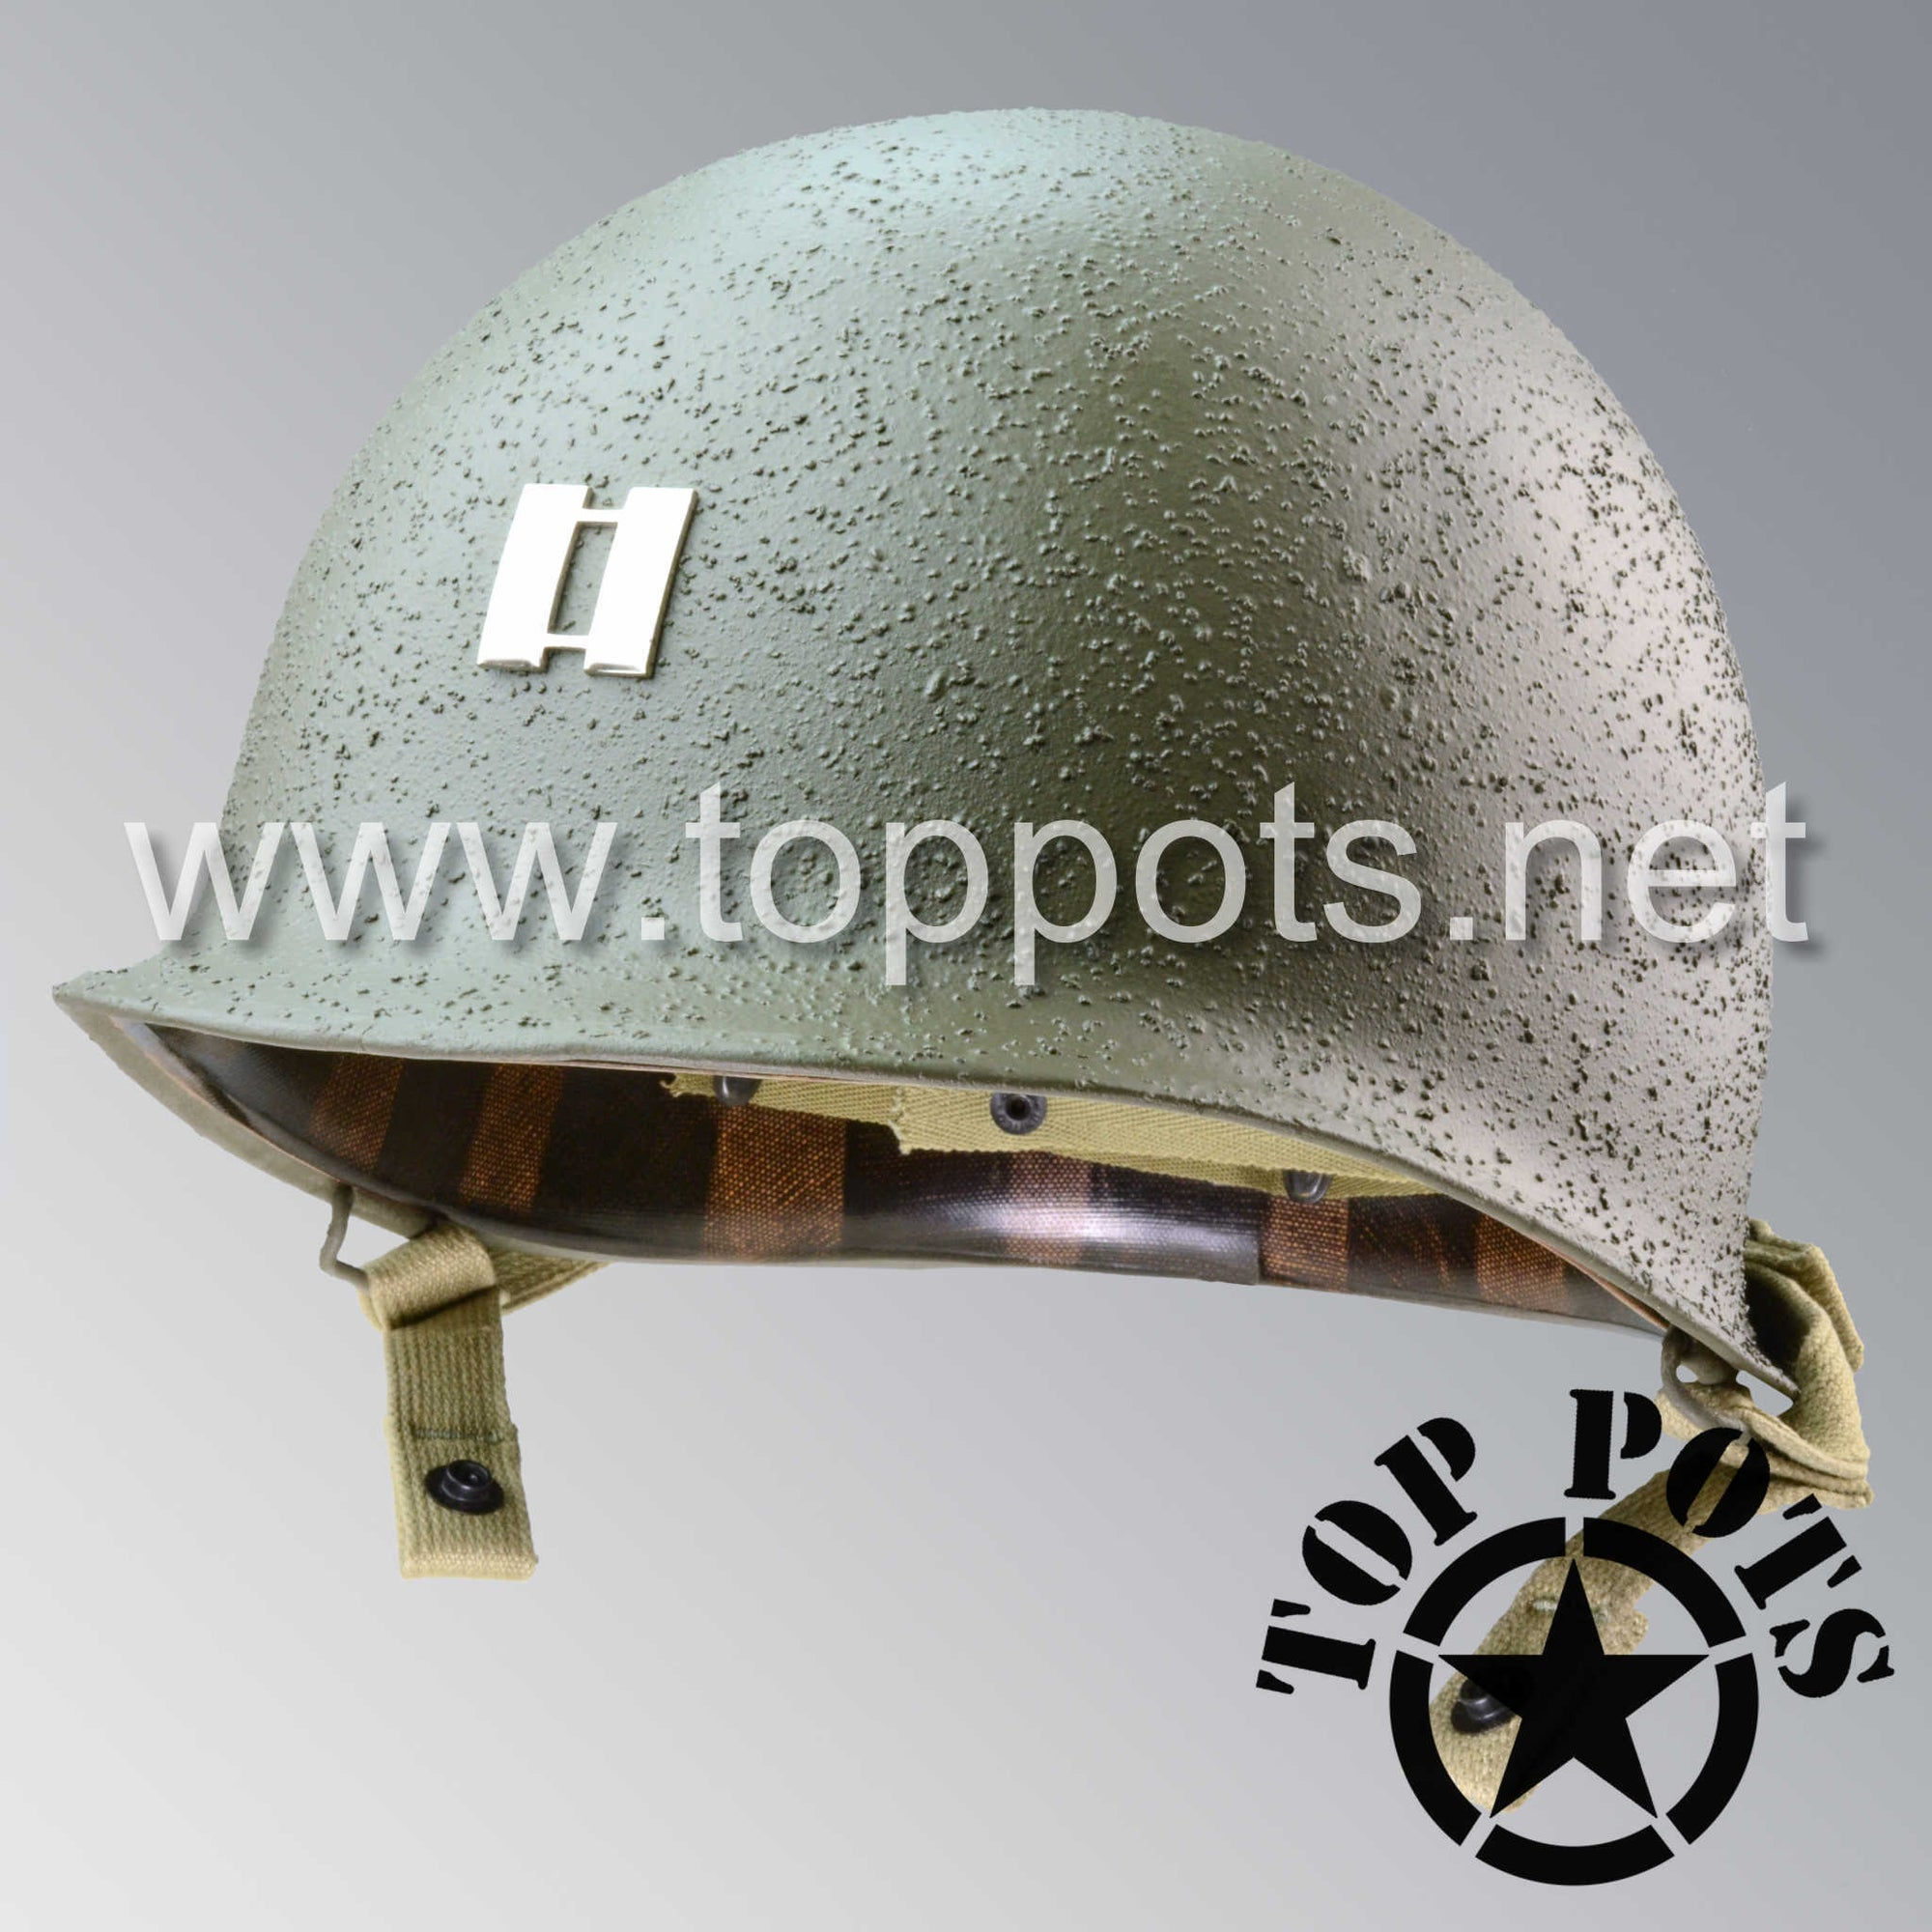 Image 1 of WWII US Army Restored Original M1C Airborne Paratrooper Helmet Swivel Bale Shell with Metal Captain Rank and Chinstraps